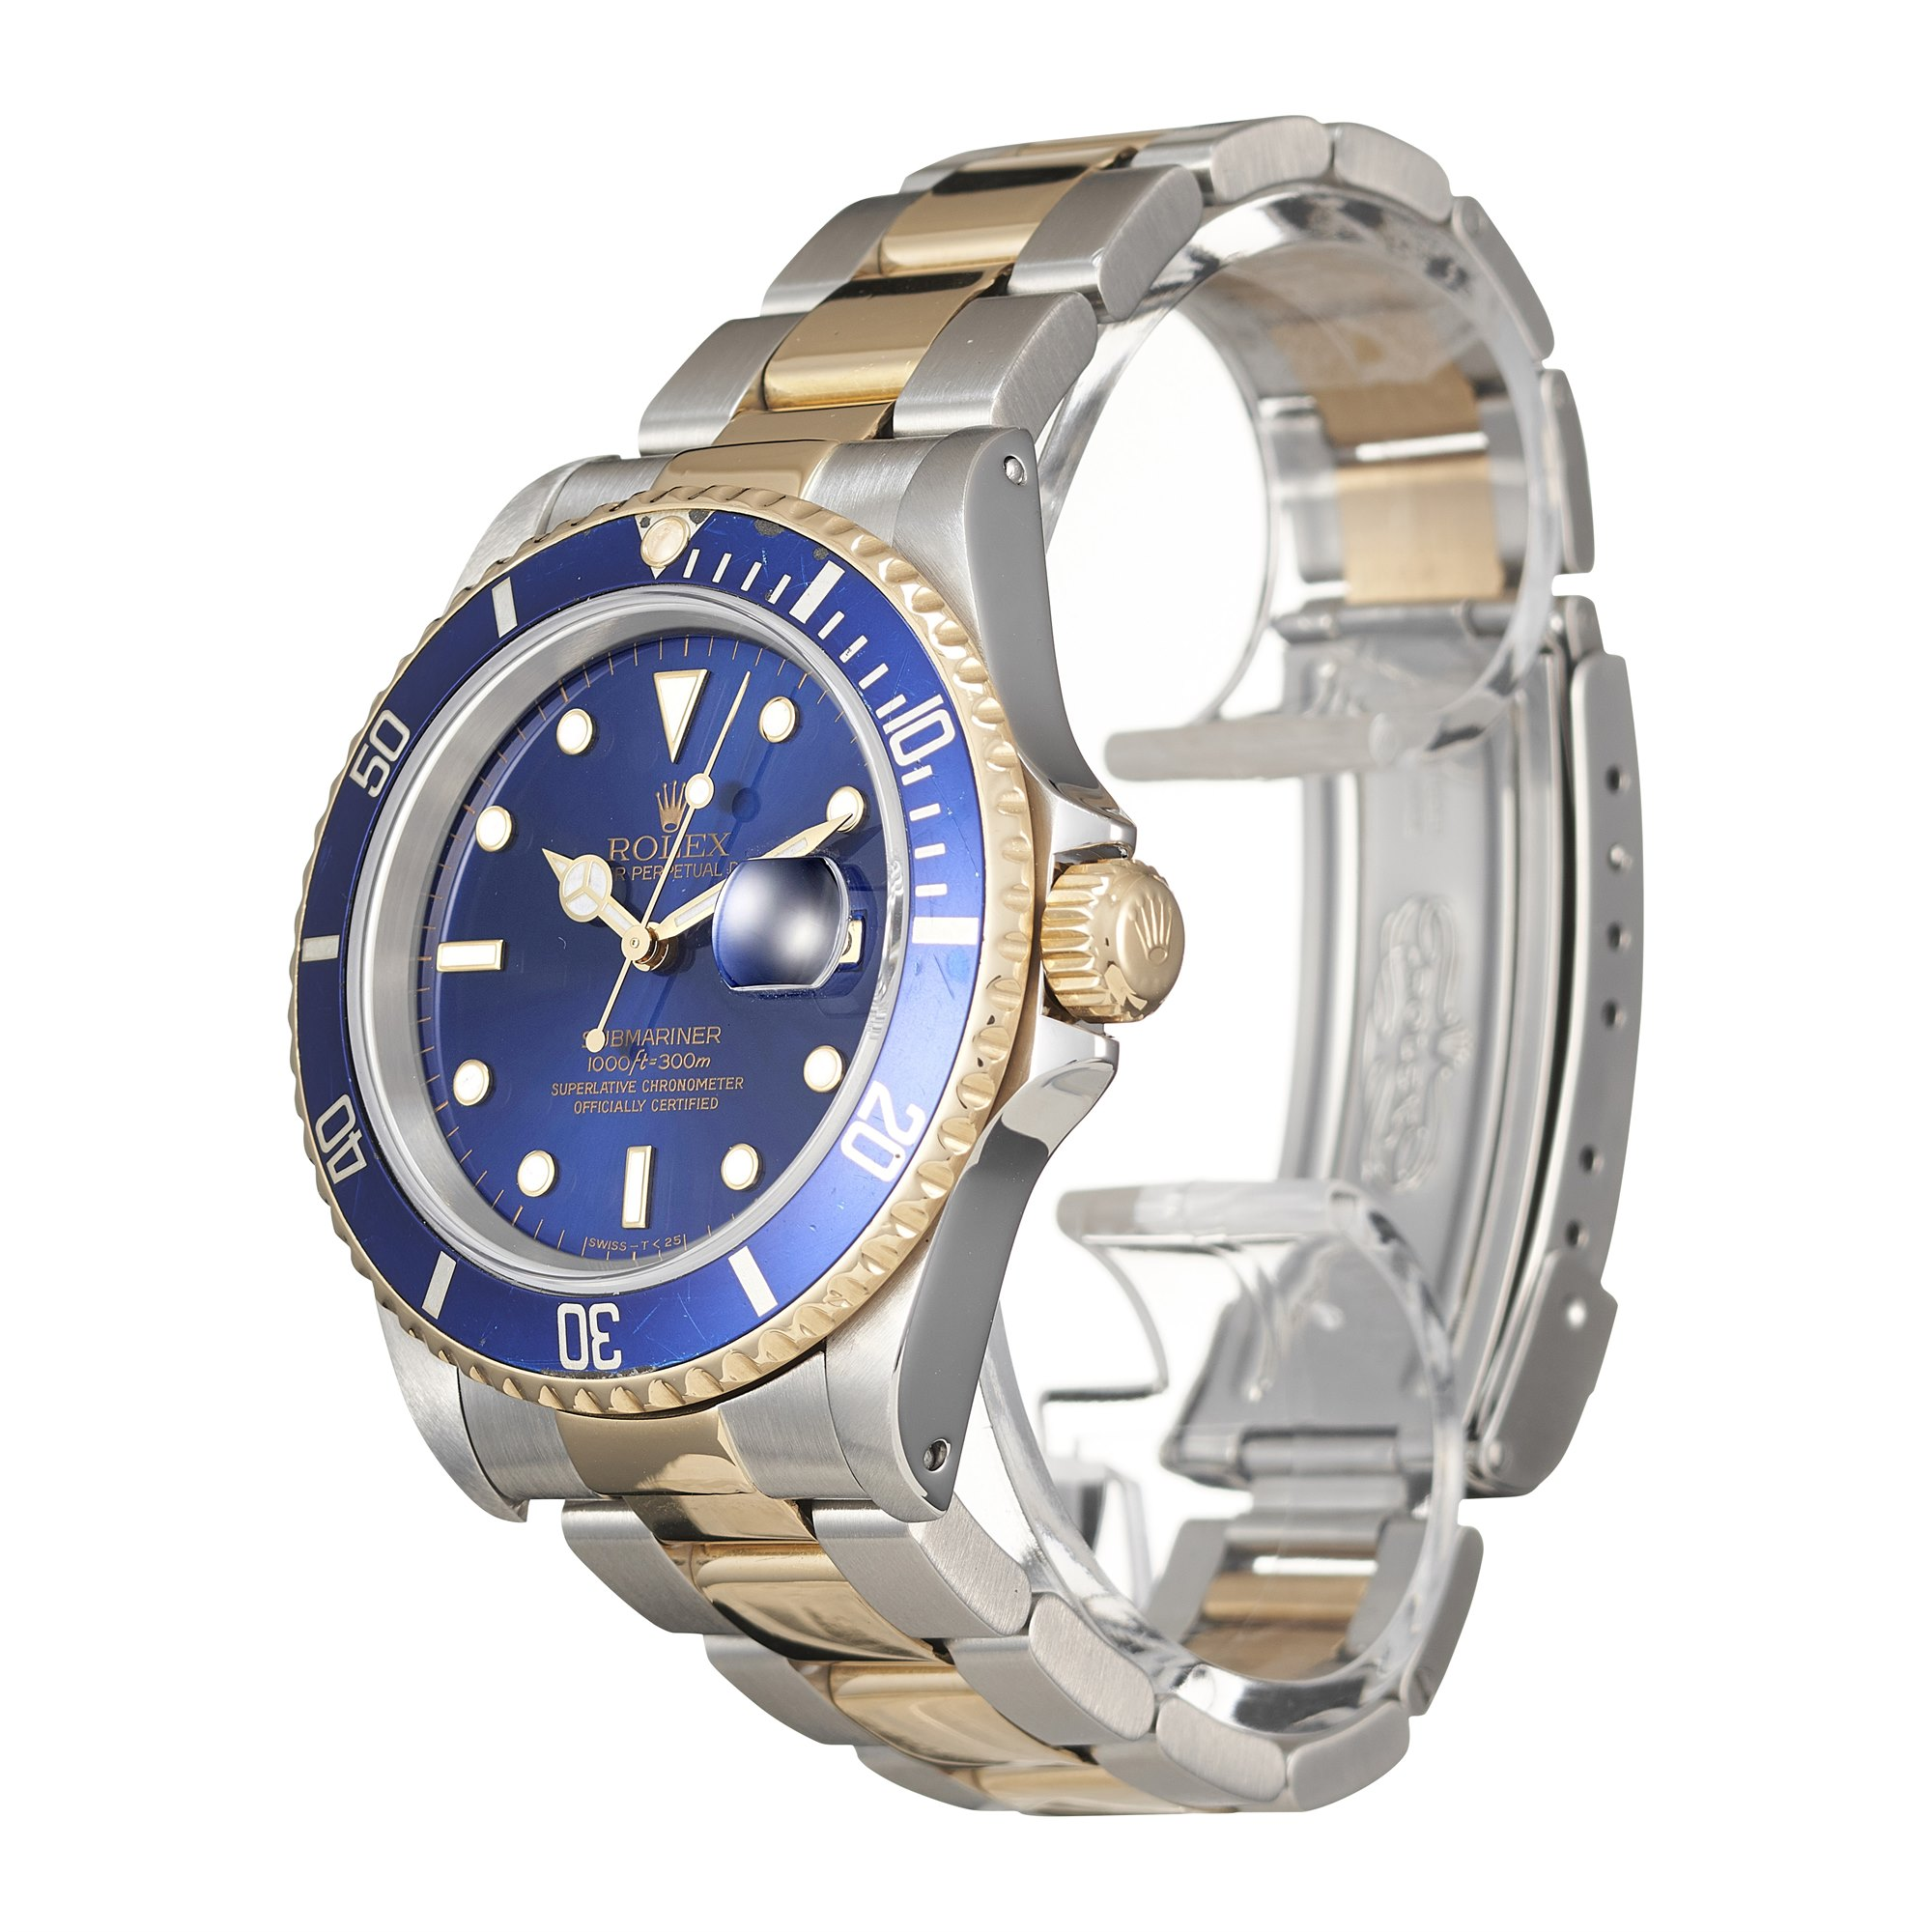 Rolex Submariner Date Stainless Steel & Yellow Gold 16613